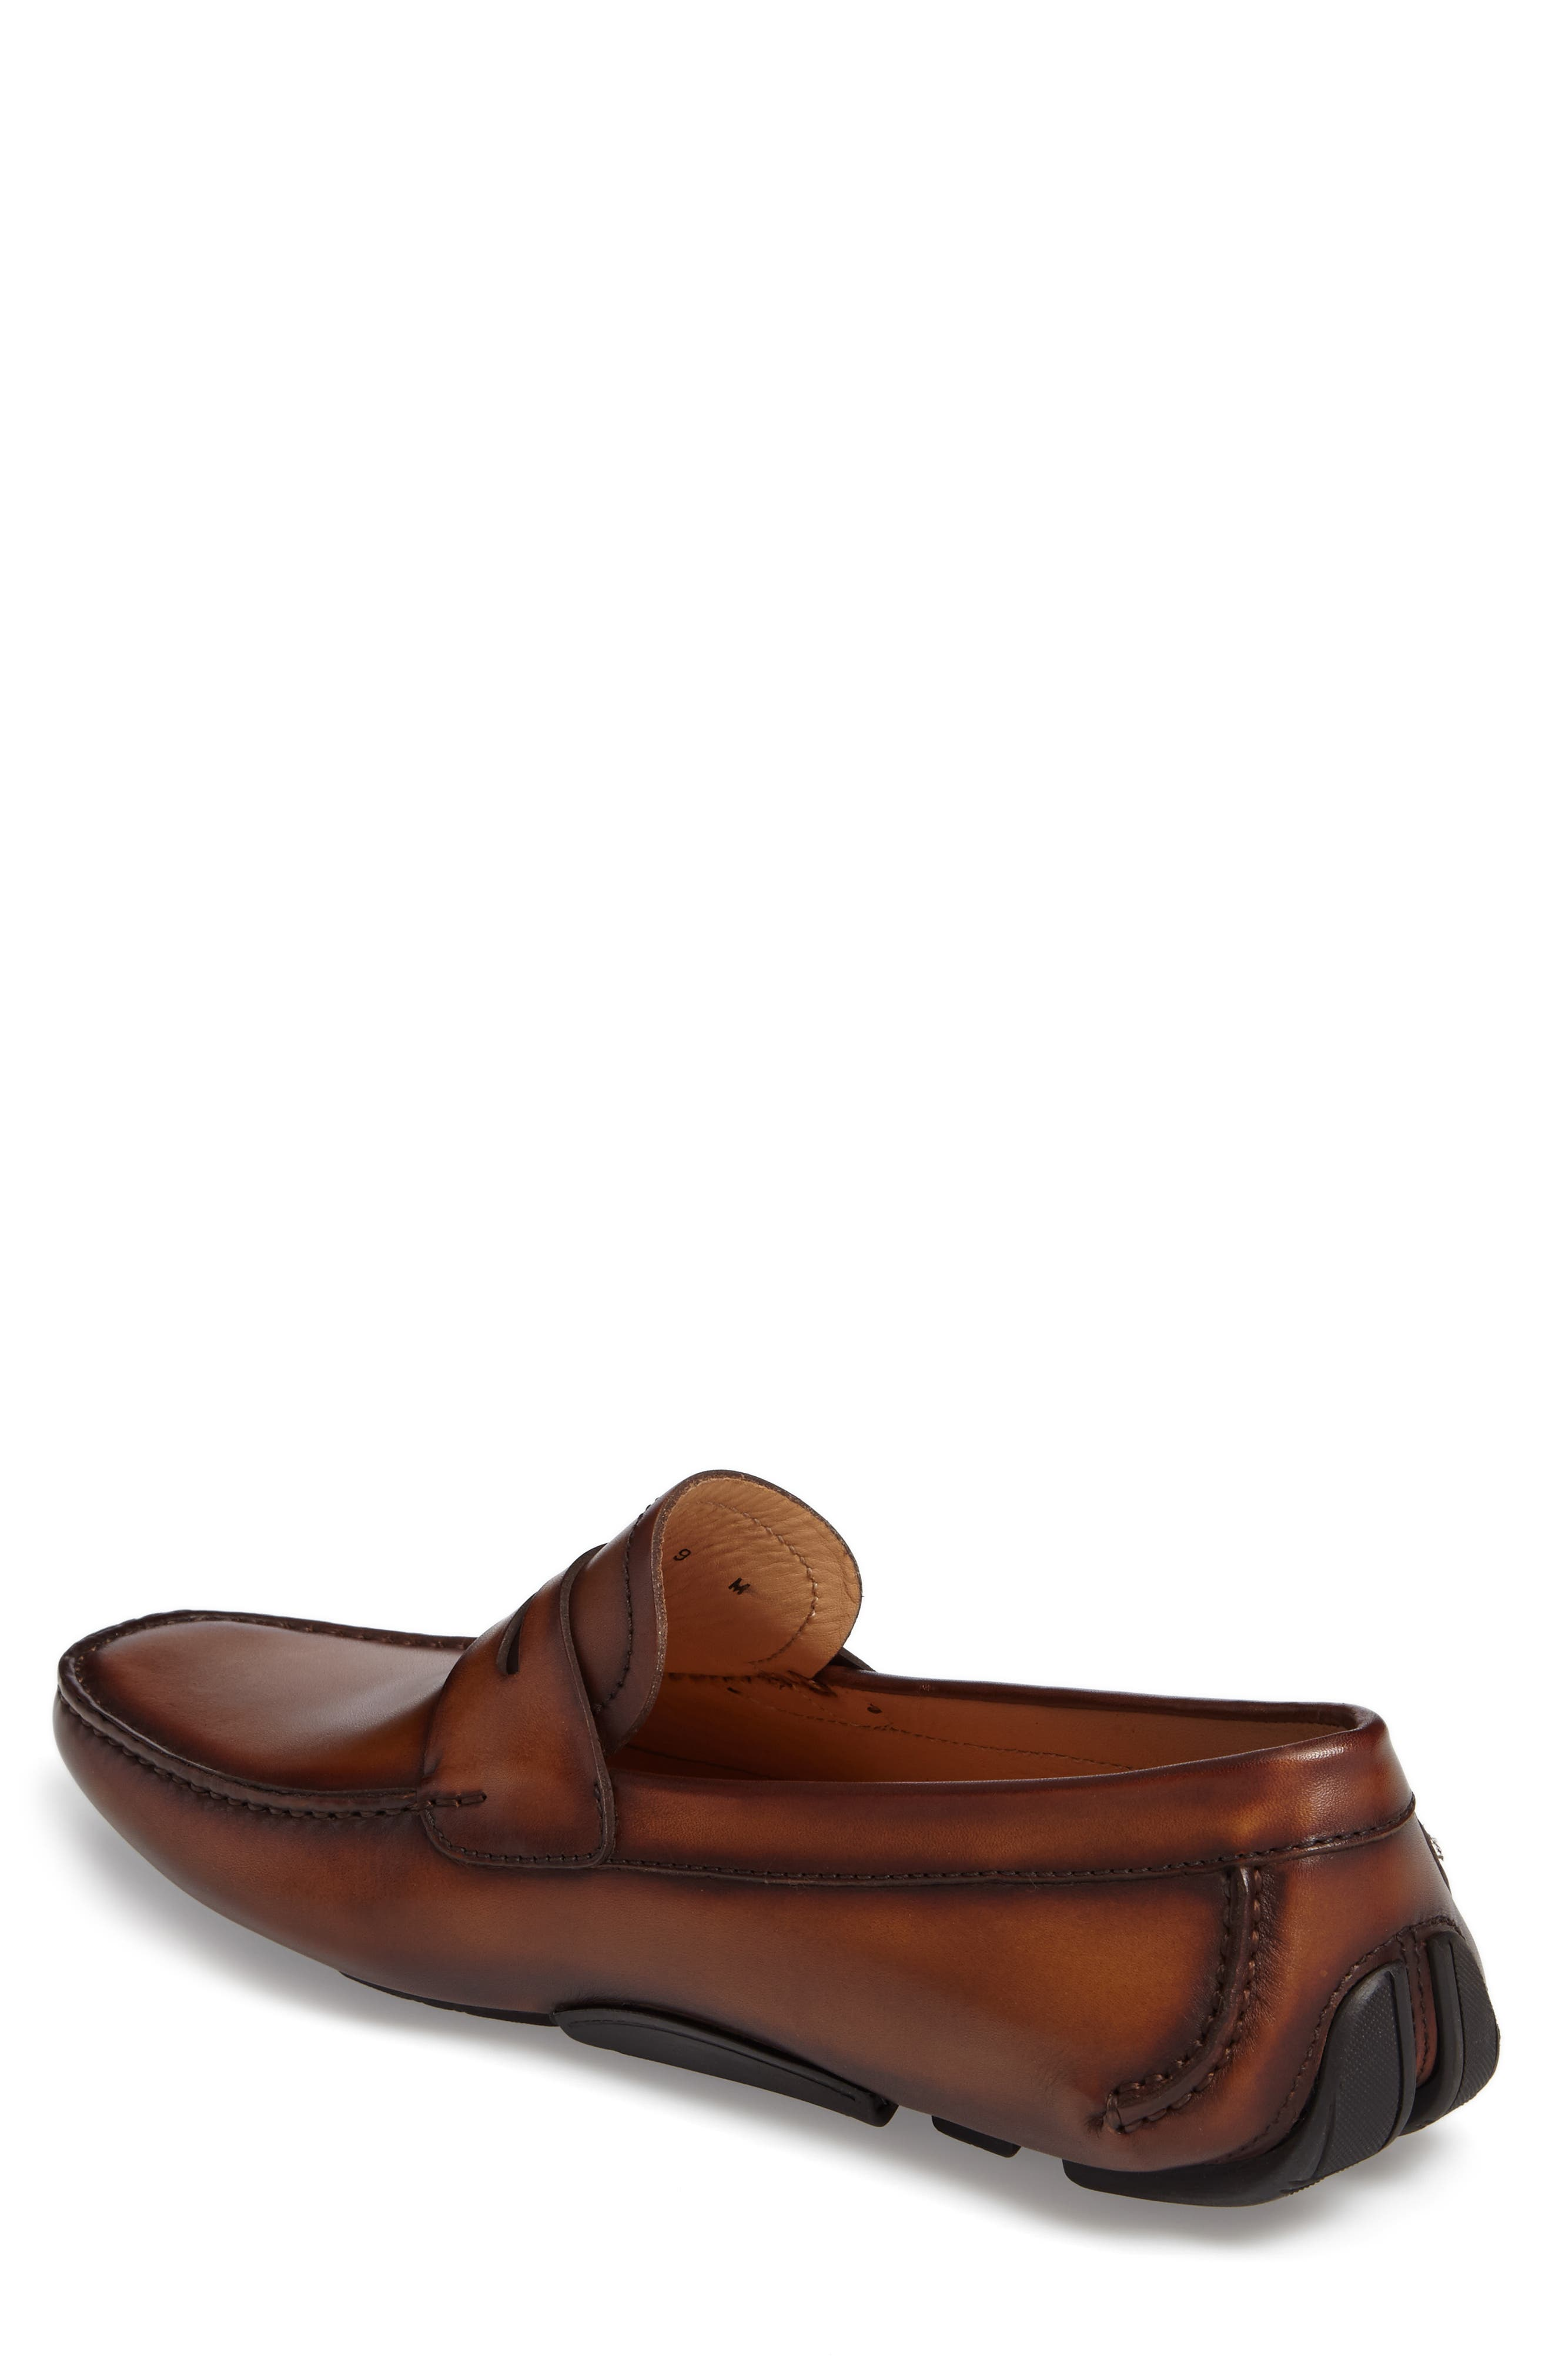 'Dylan' Leather Driving Shoe,                             Alternate thumbnail 11, color,